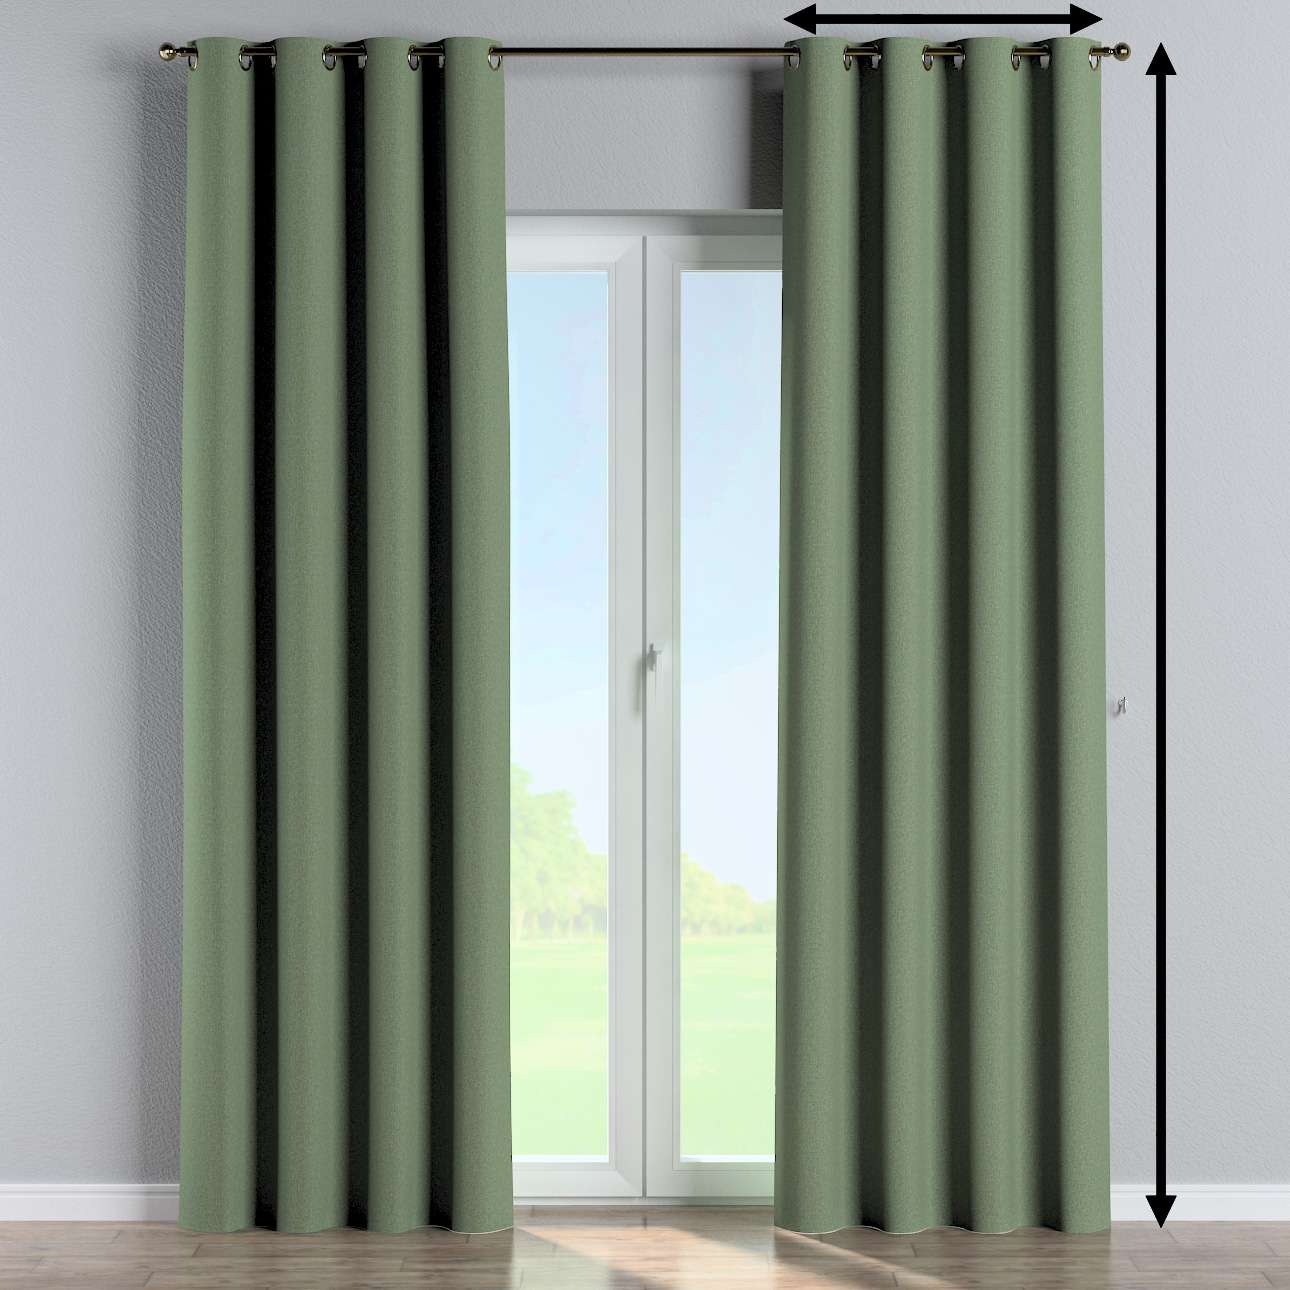 Eyelet curtain in collection Amsterdam, fabric: 704-44